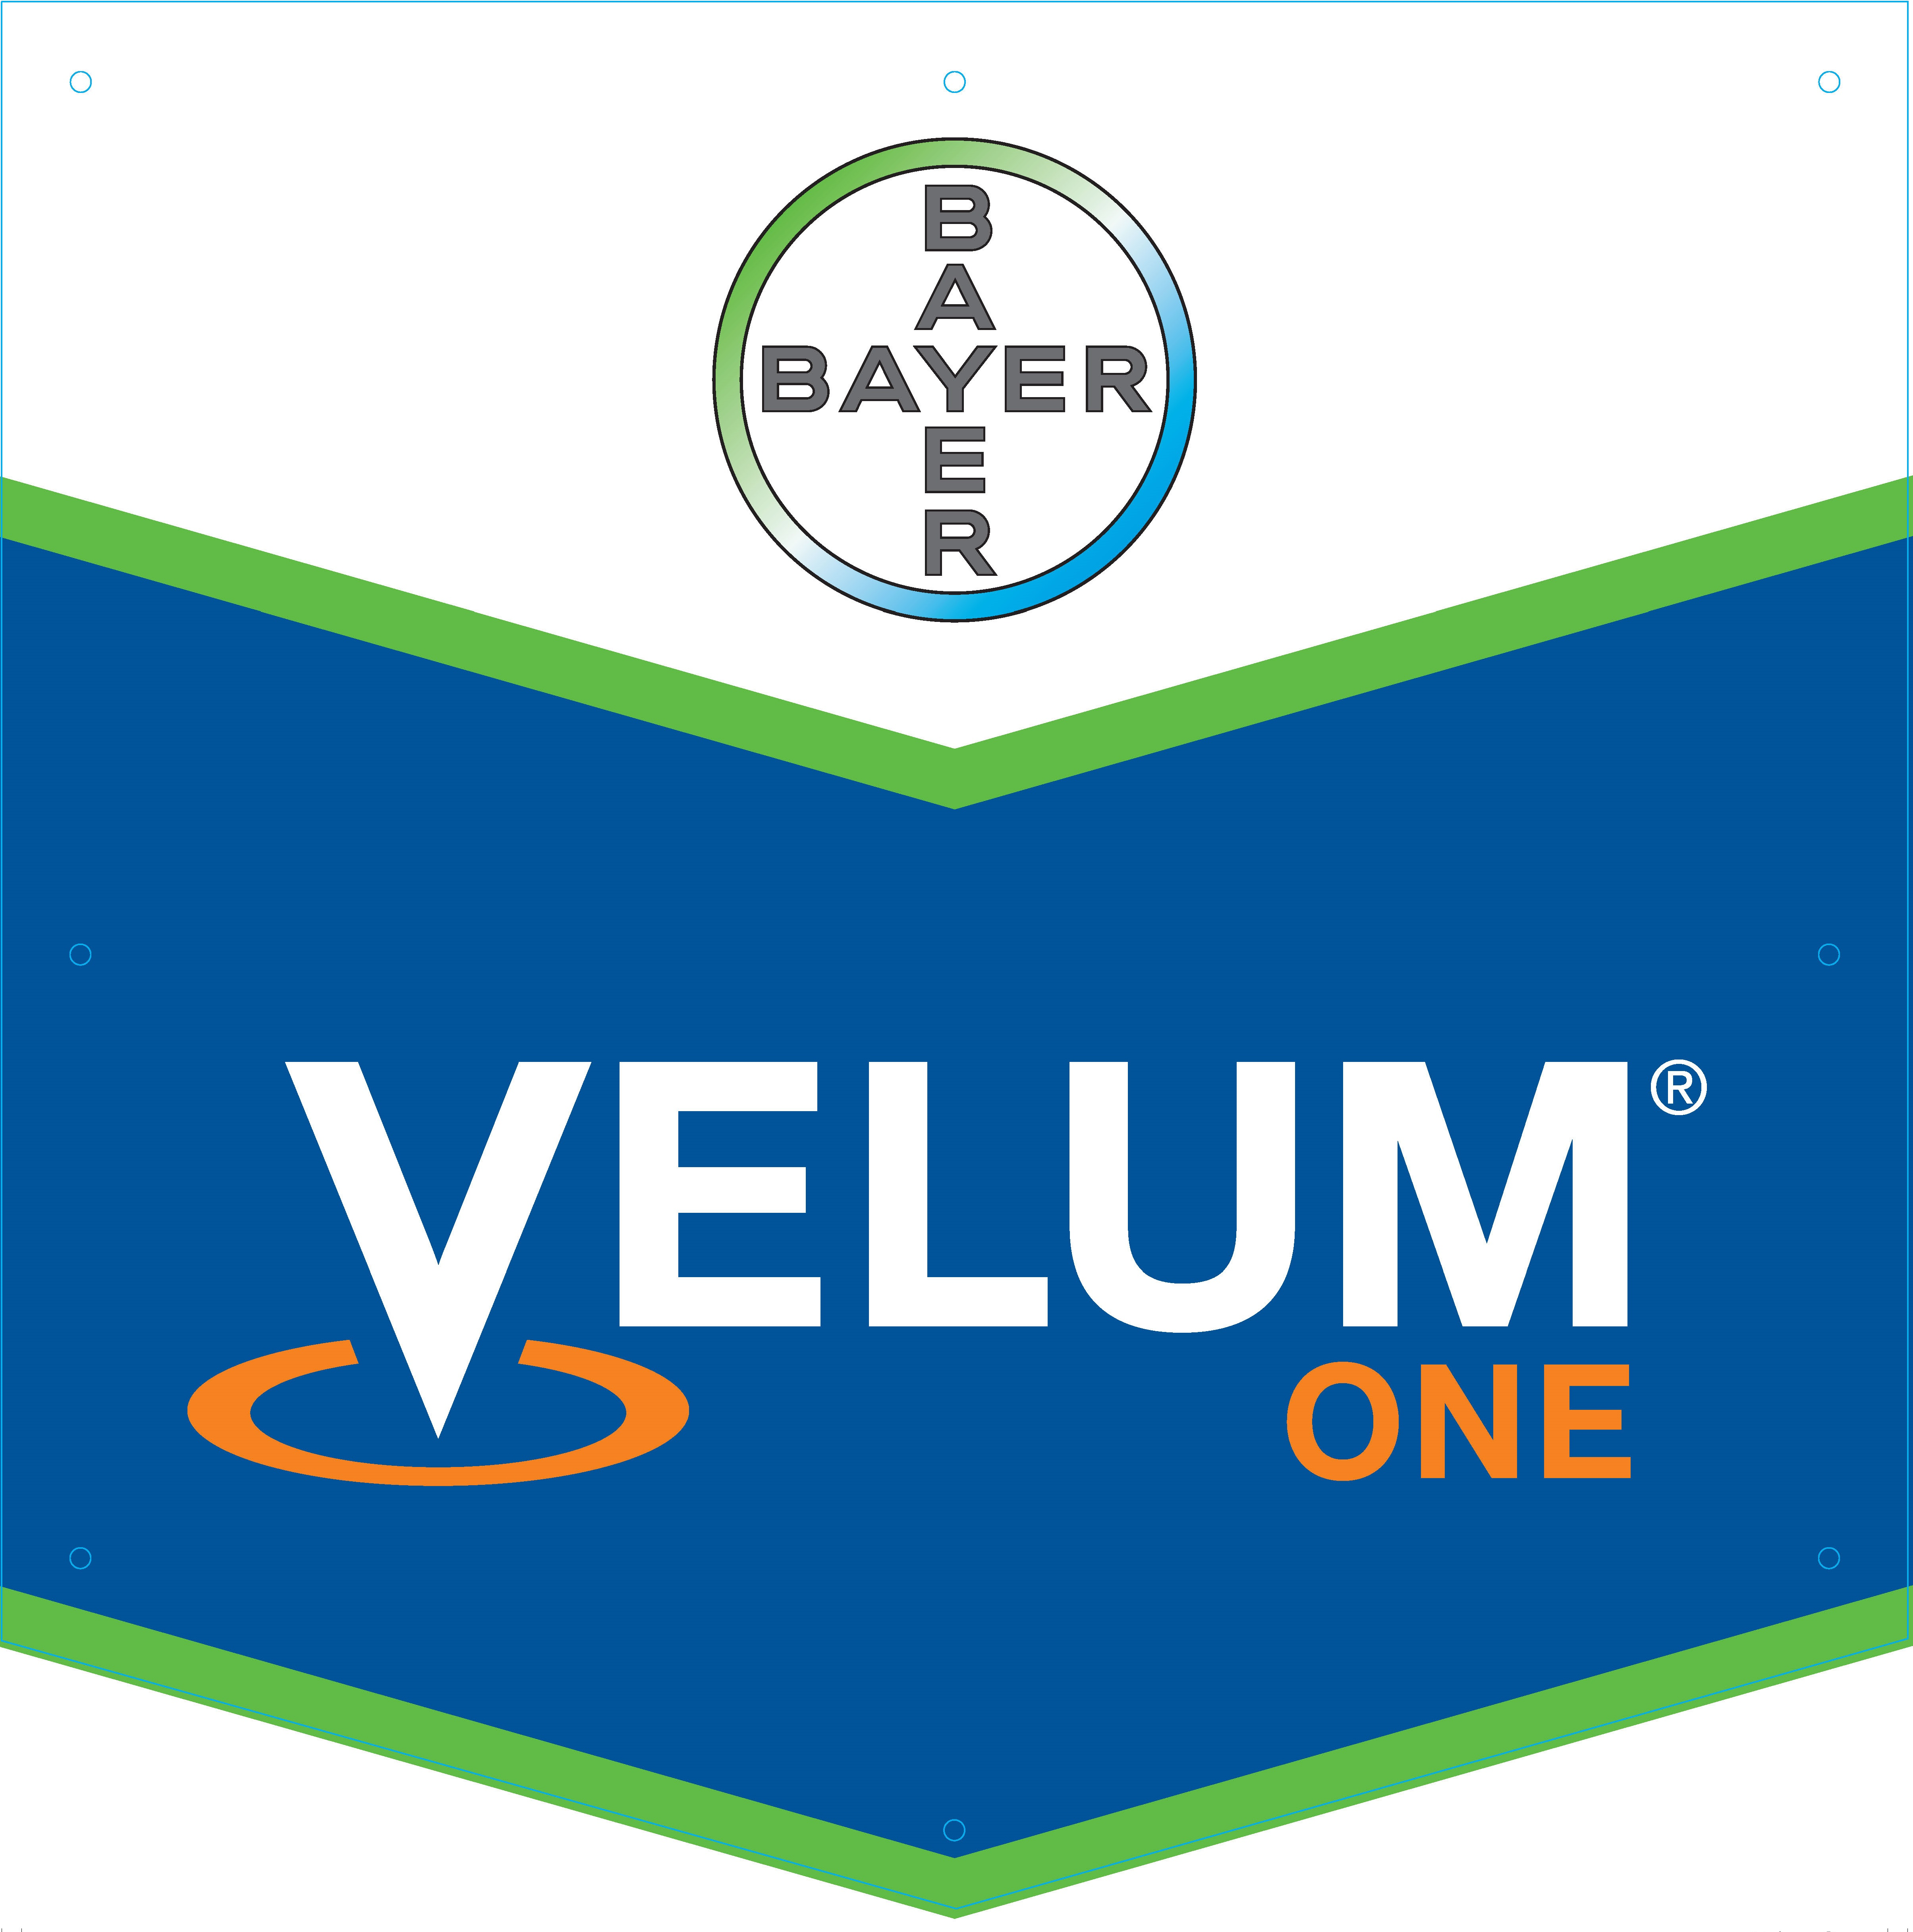 Bayer Velum One logo